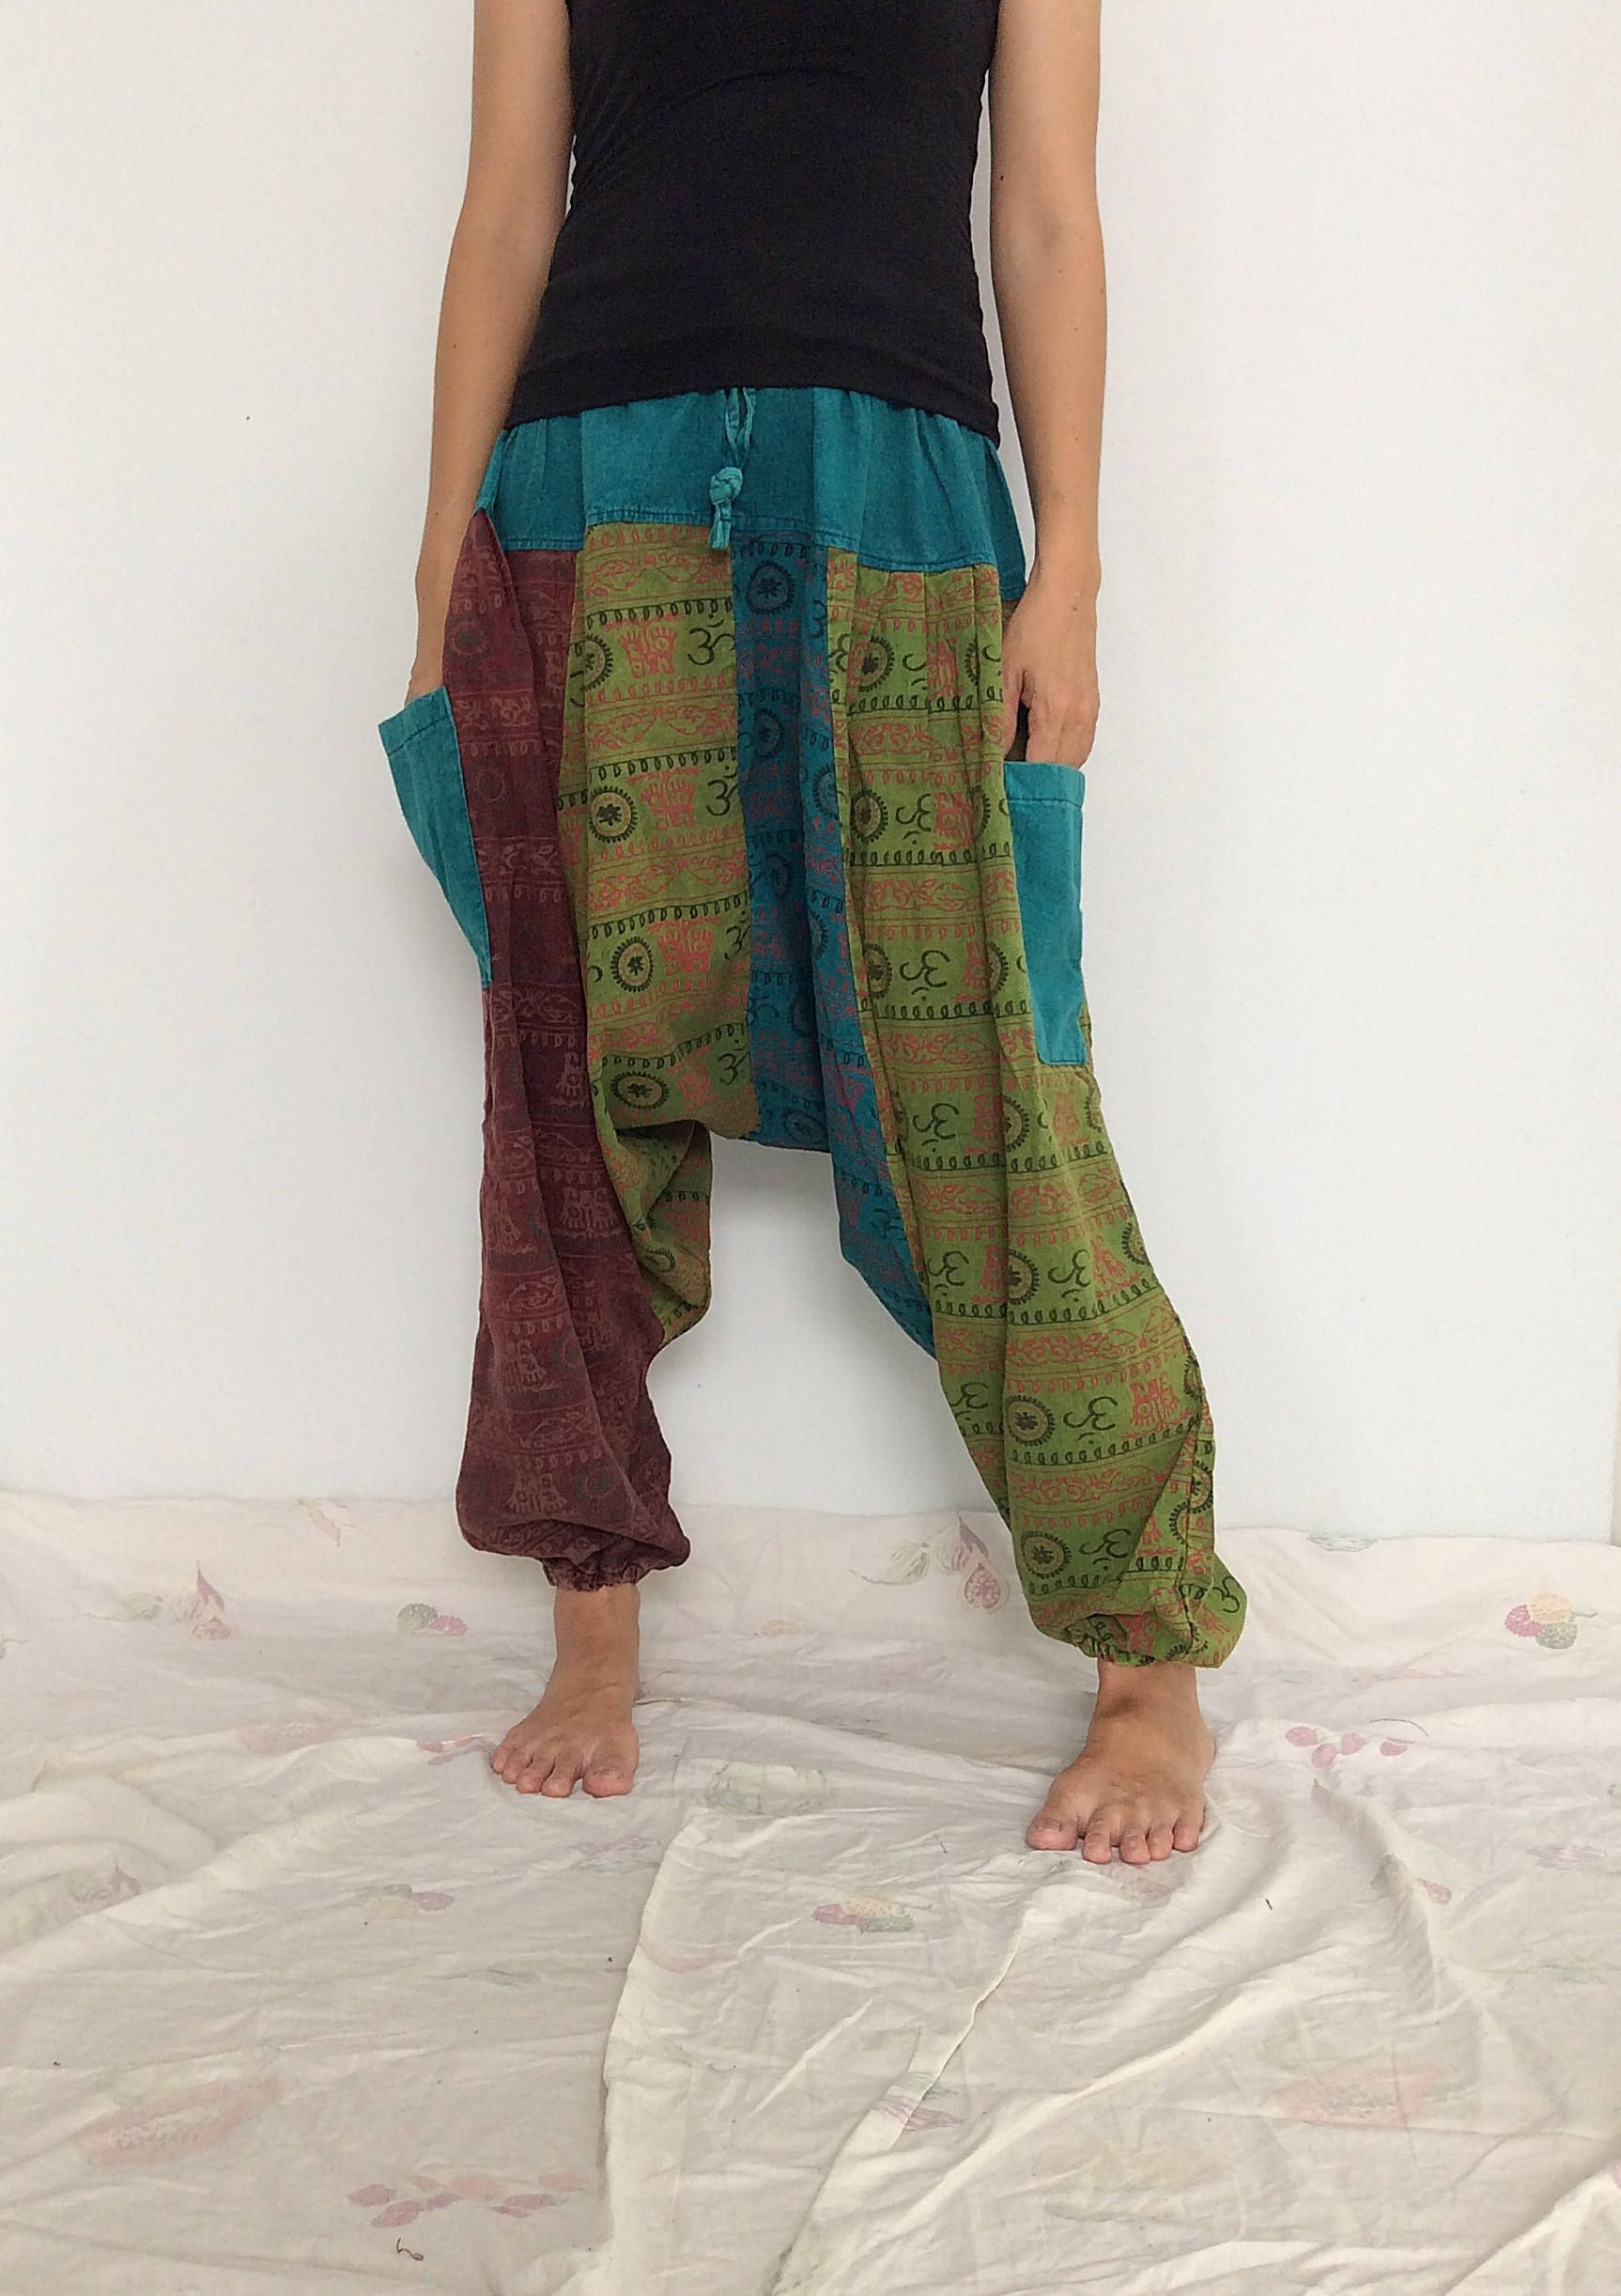 Mixed Colors Hippie Harem Pants, Unisex Pants, Drop Crotch Pants, Baggy Pants with Om patterned (HR-532) by ThaiFascinate on Etsy